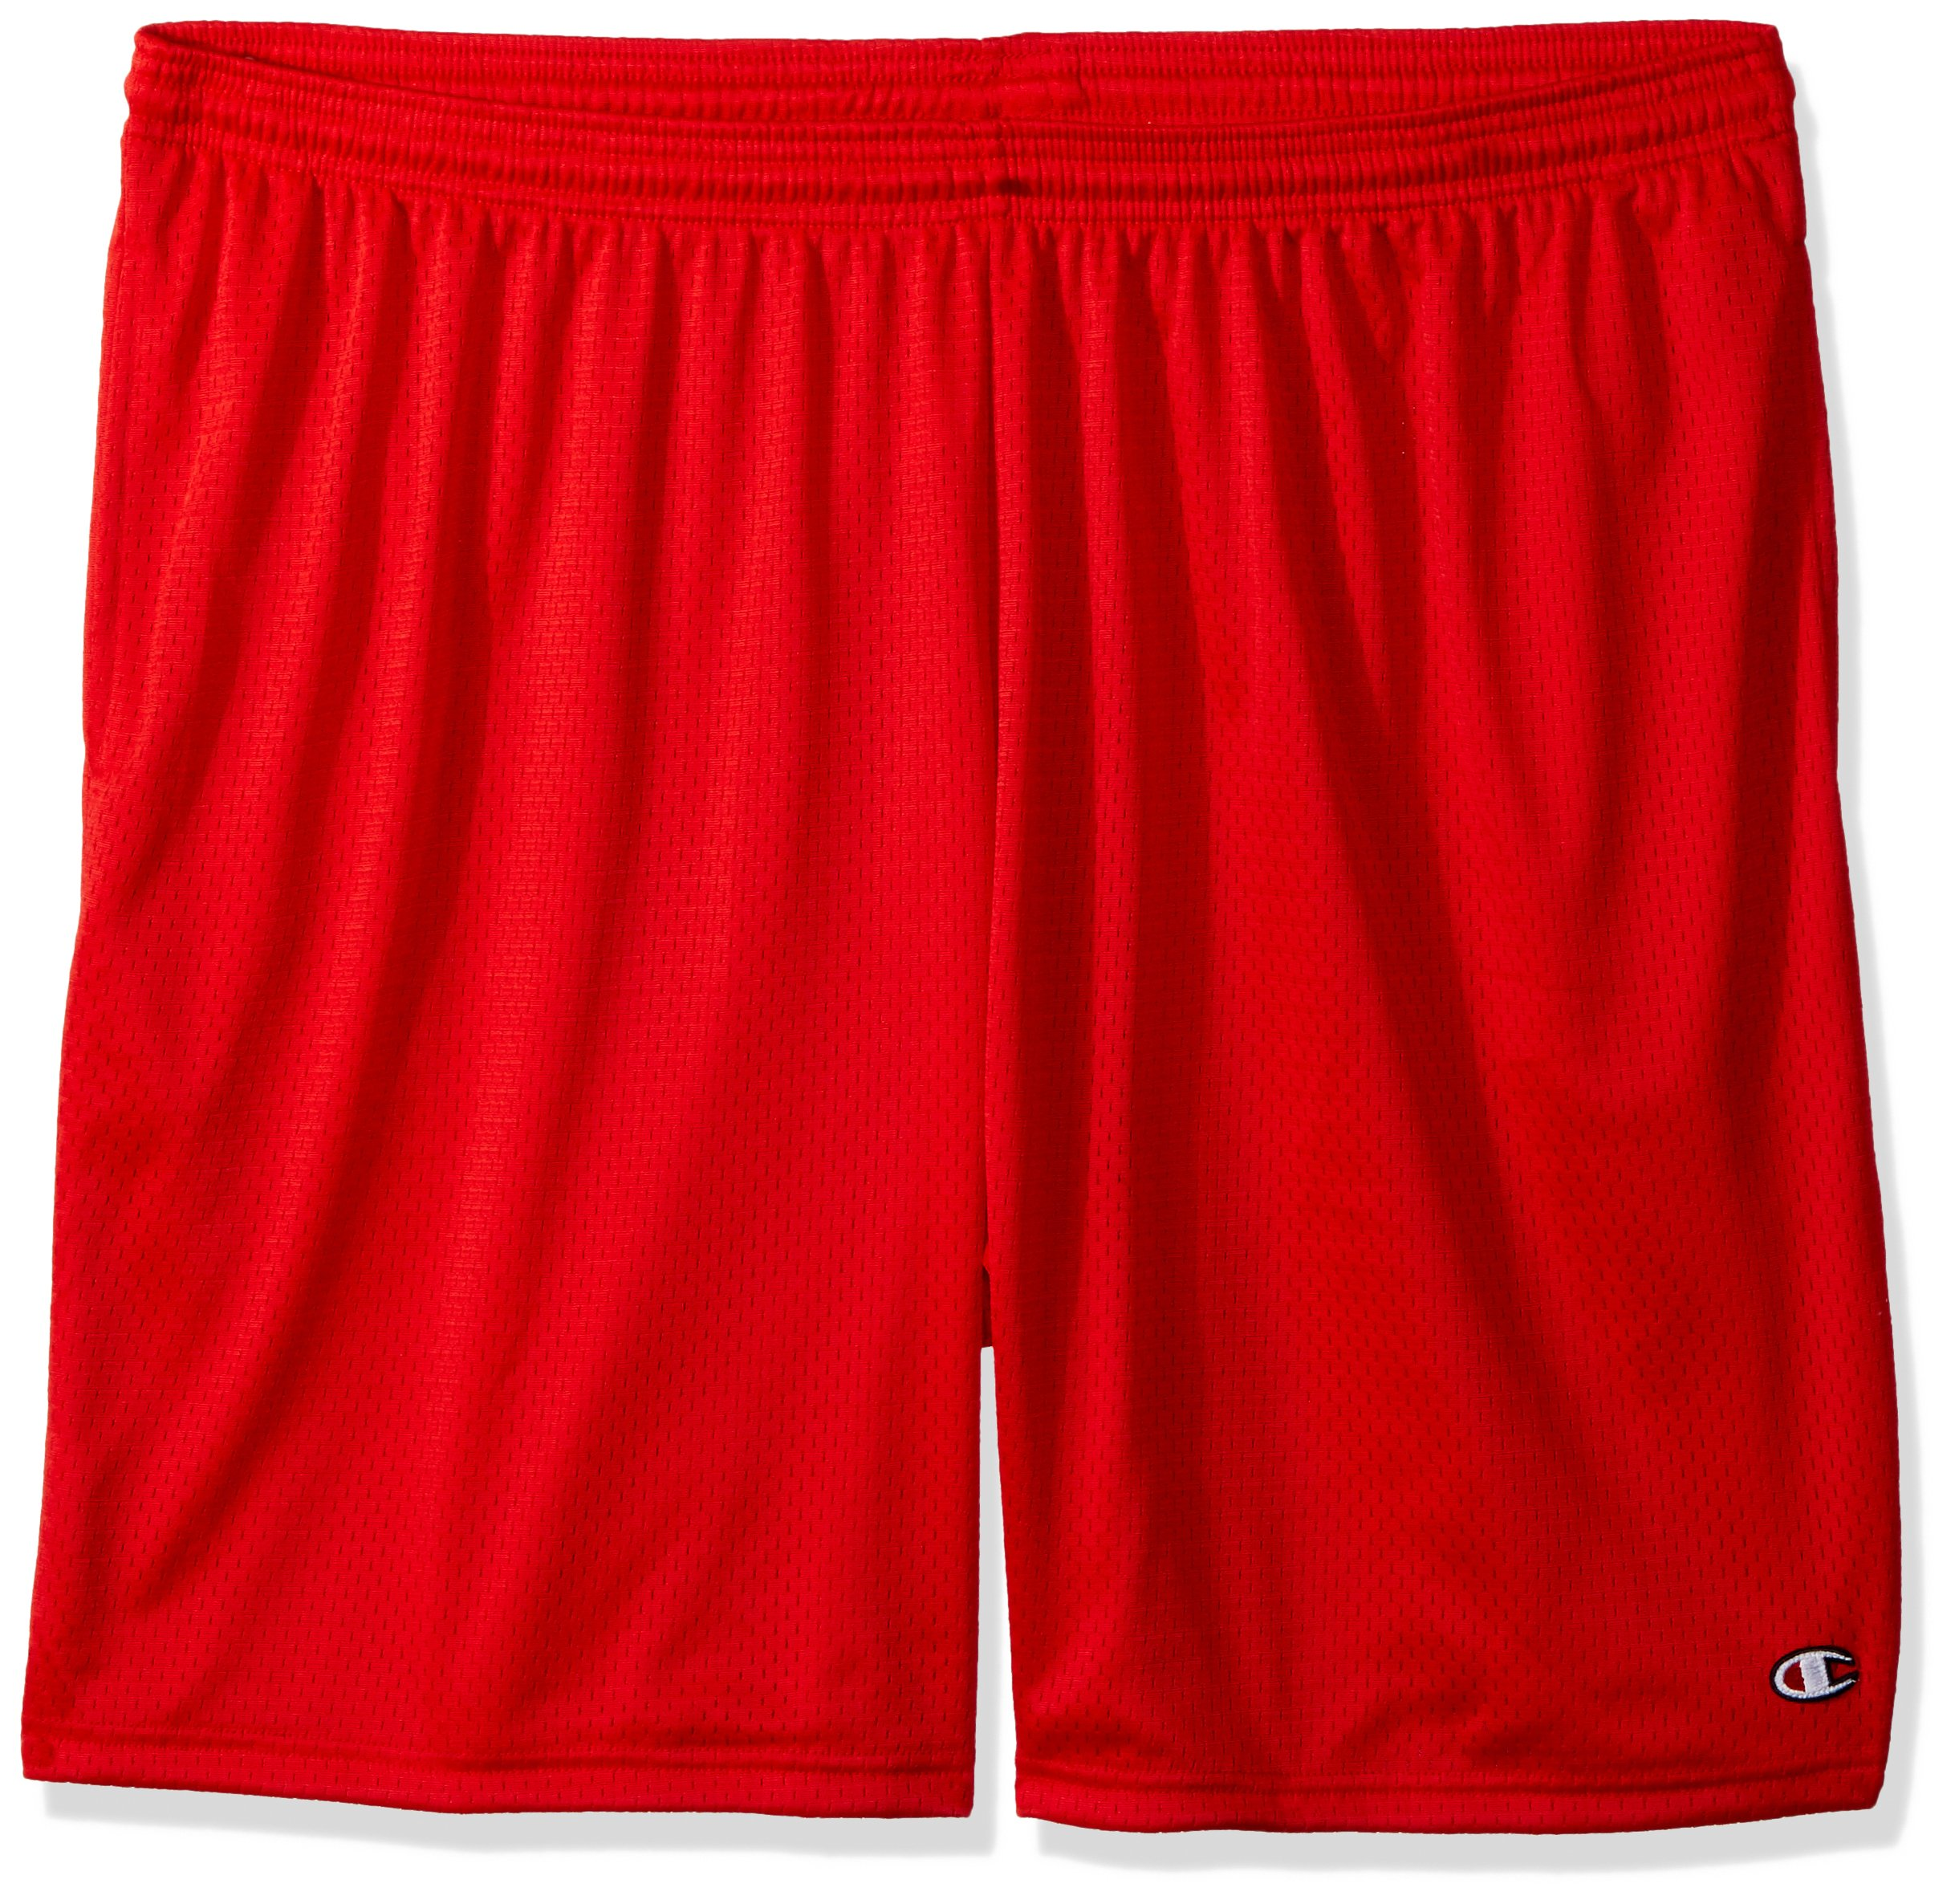 Champion Men's Long Mesh Short with Pockets,Crimson,X-Large by Champion